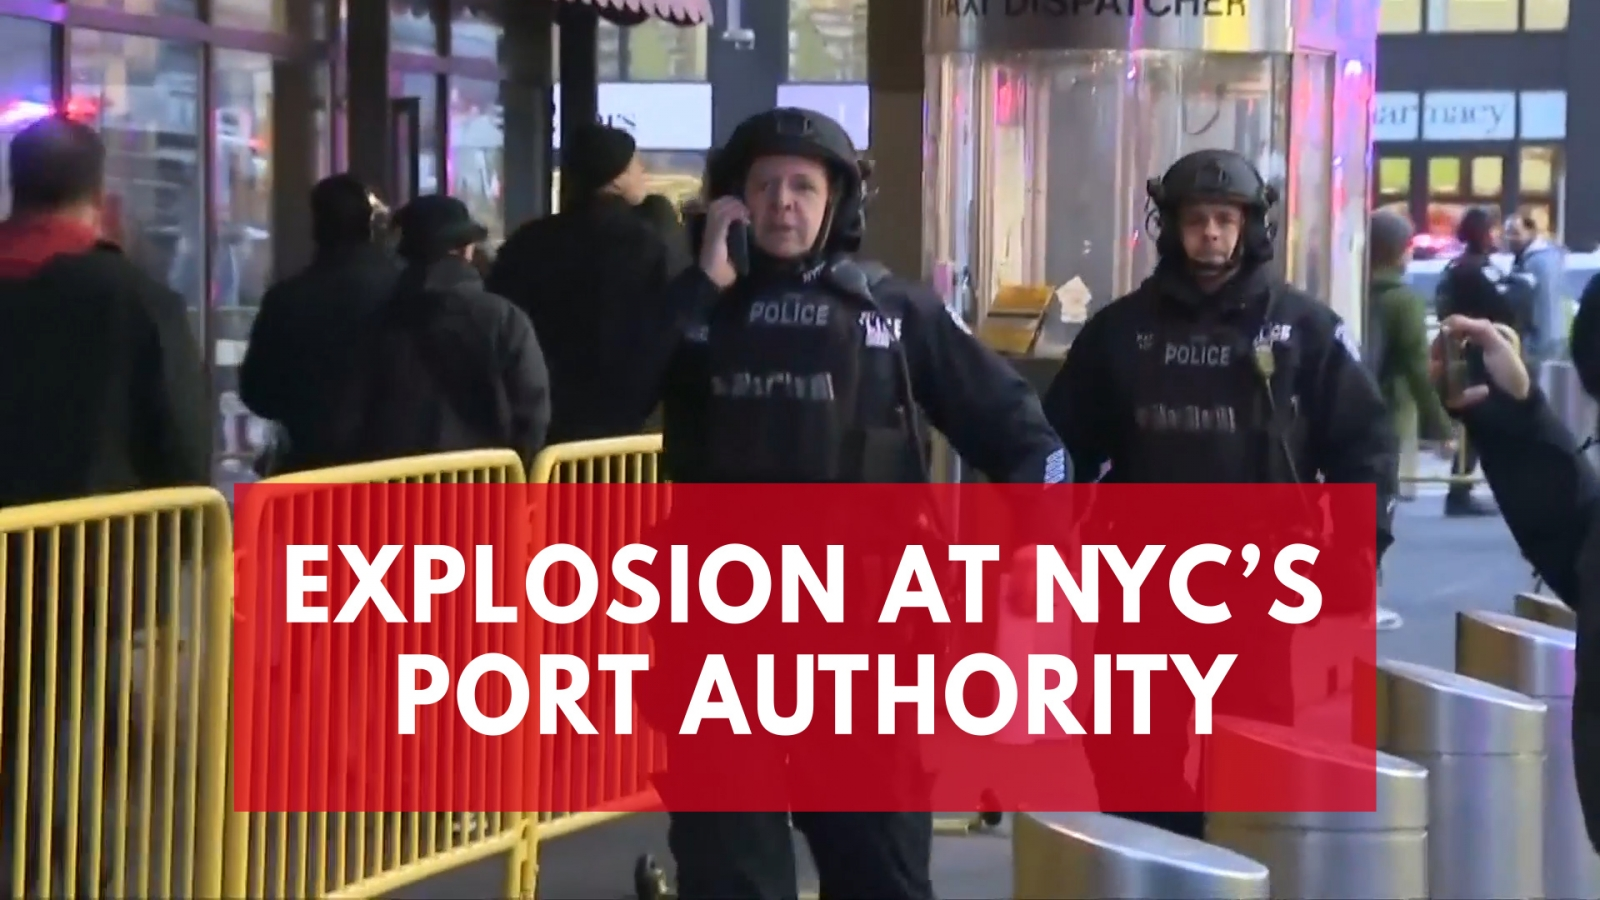 New York explosion: Video shows police response, people being evacuated from Port Authority